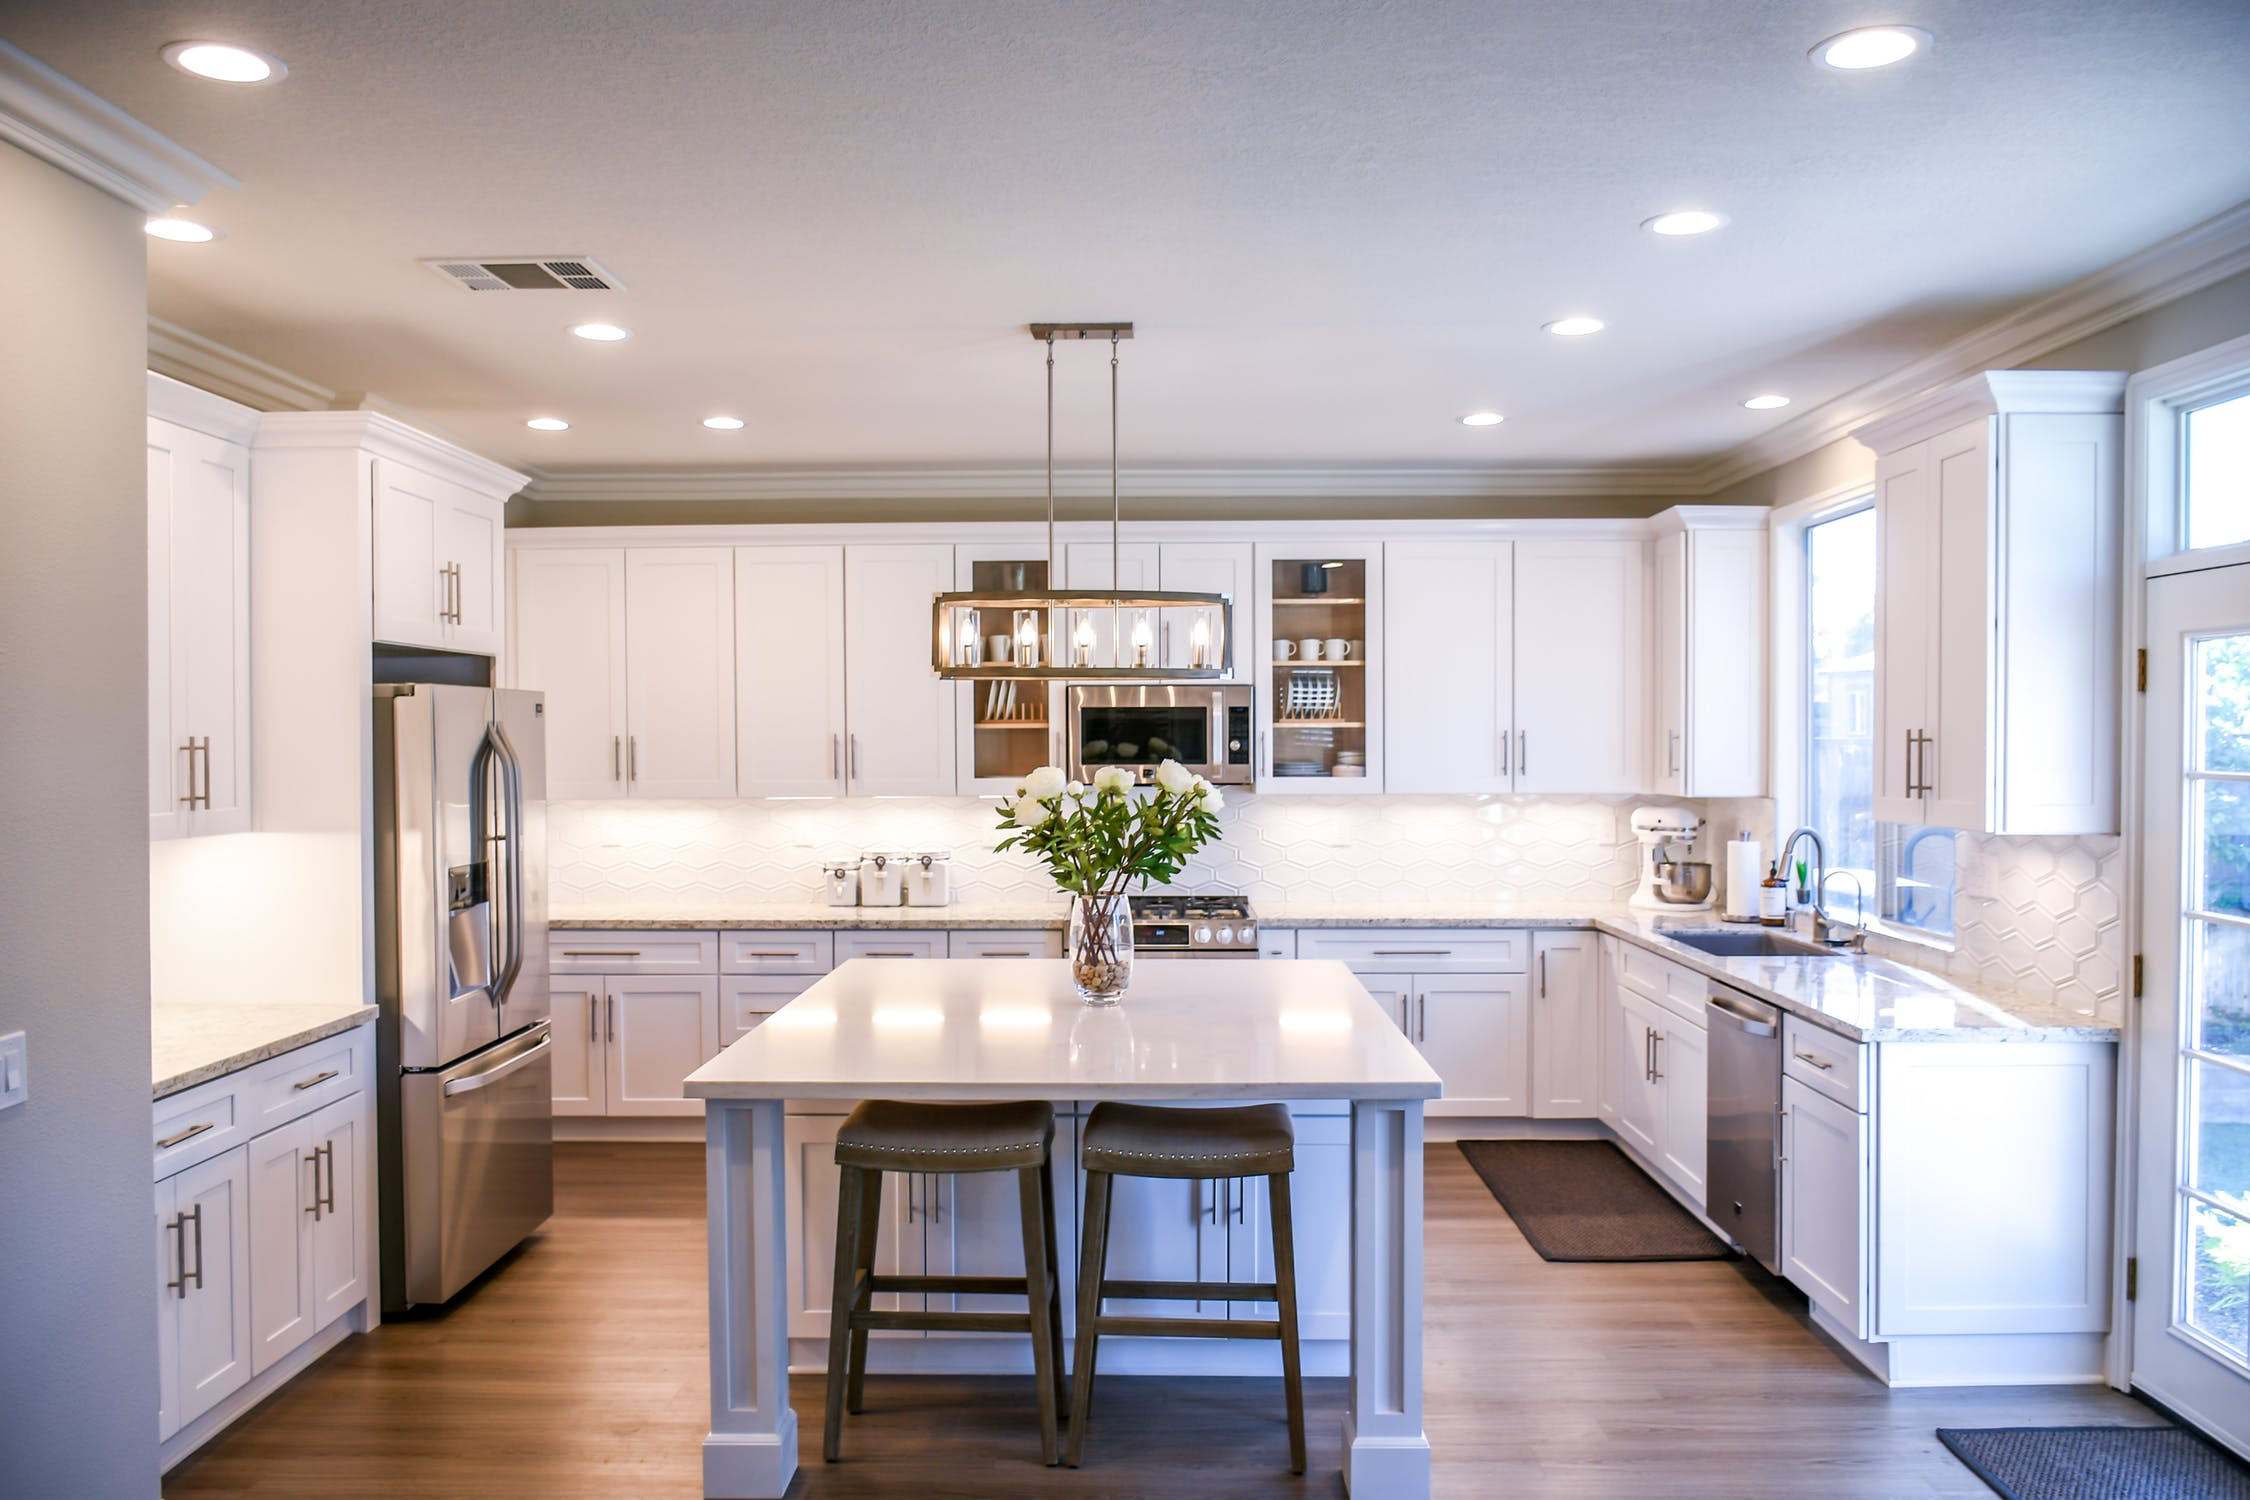 new kitchen with vibrant lighting